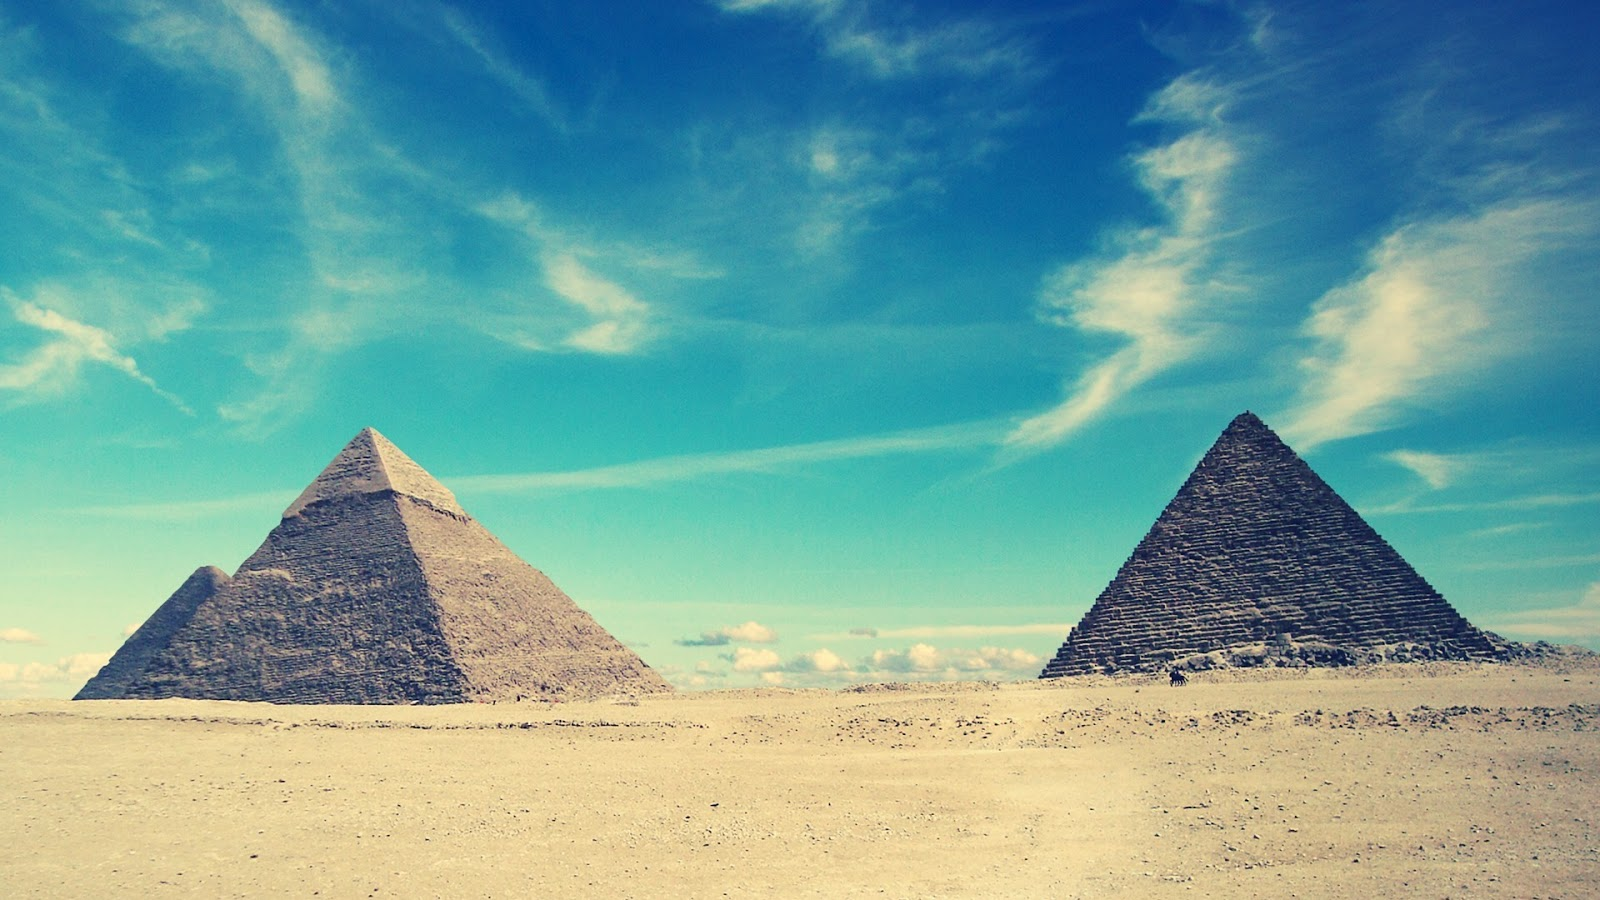 pyramid background-#11